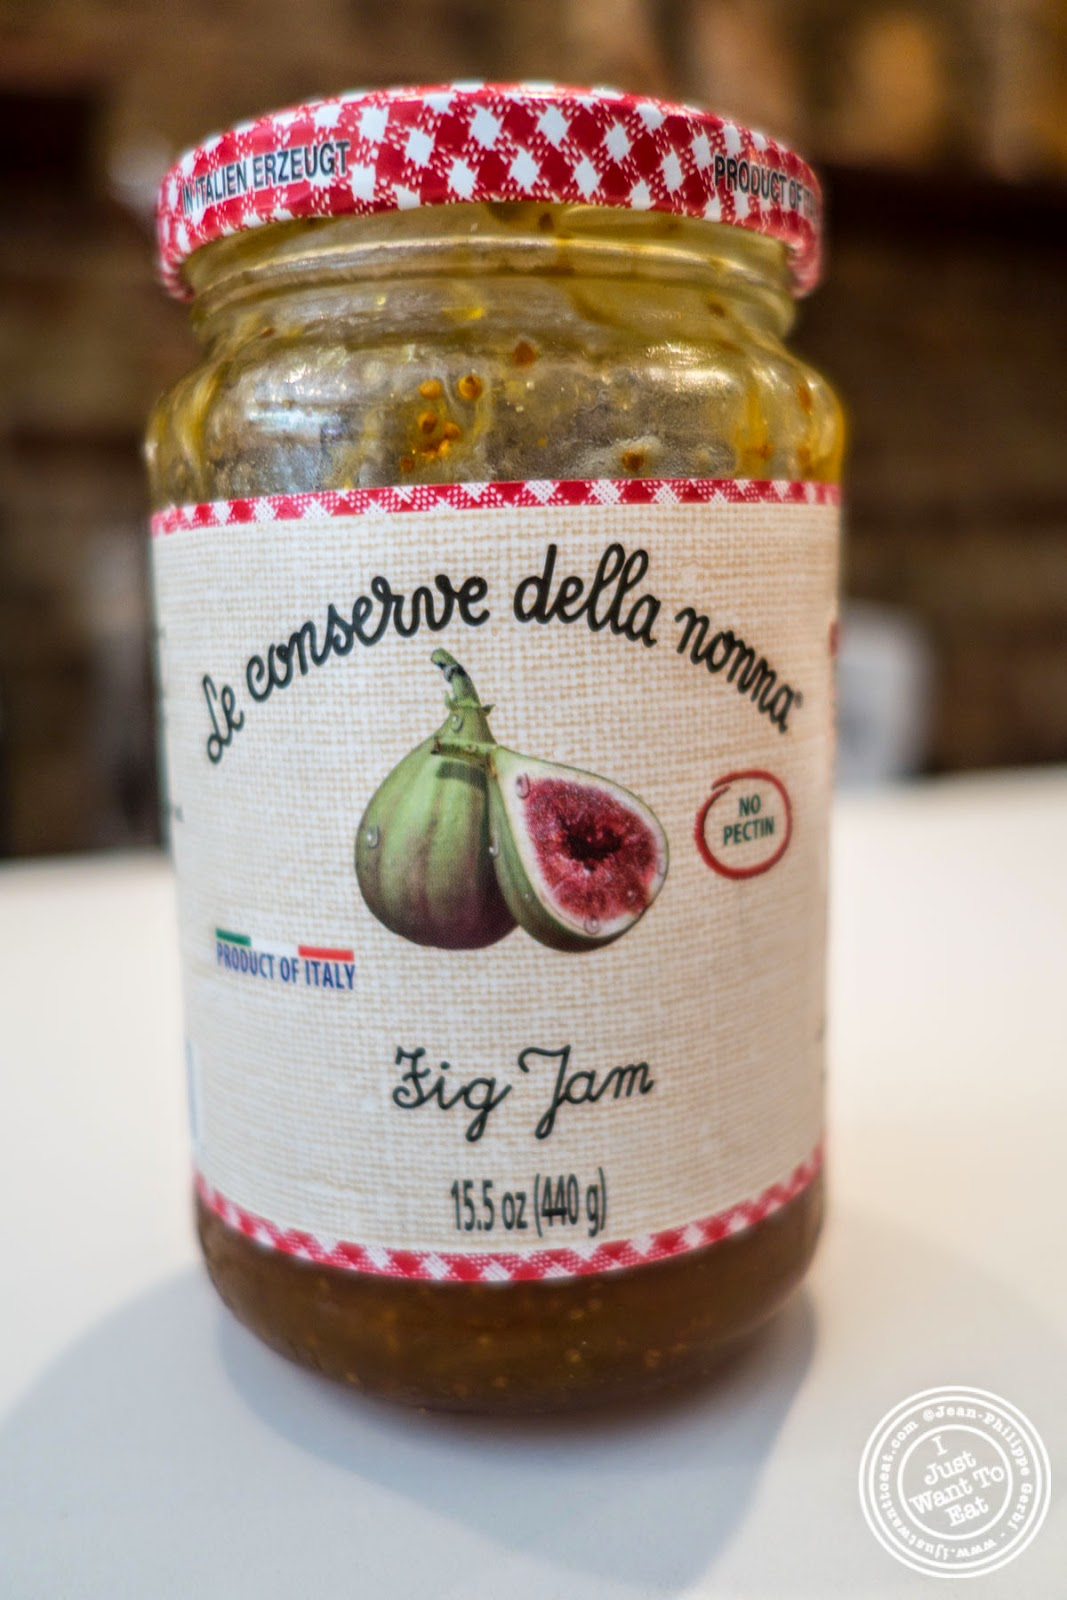 image of Italian fig jam at Verde Vita Toscana in Hoboken, NJ